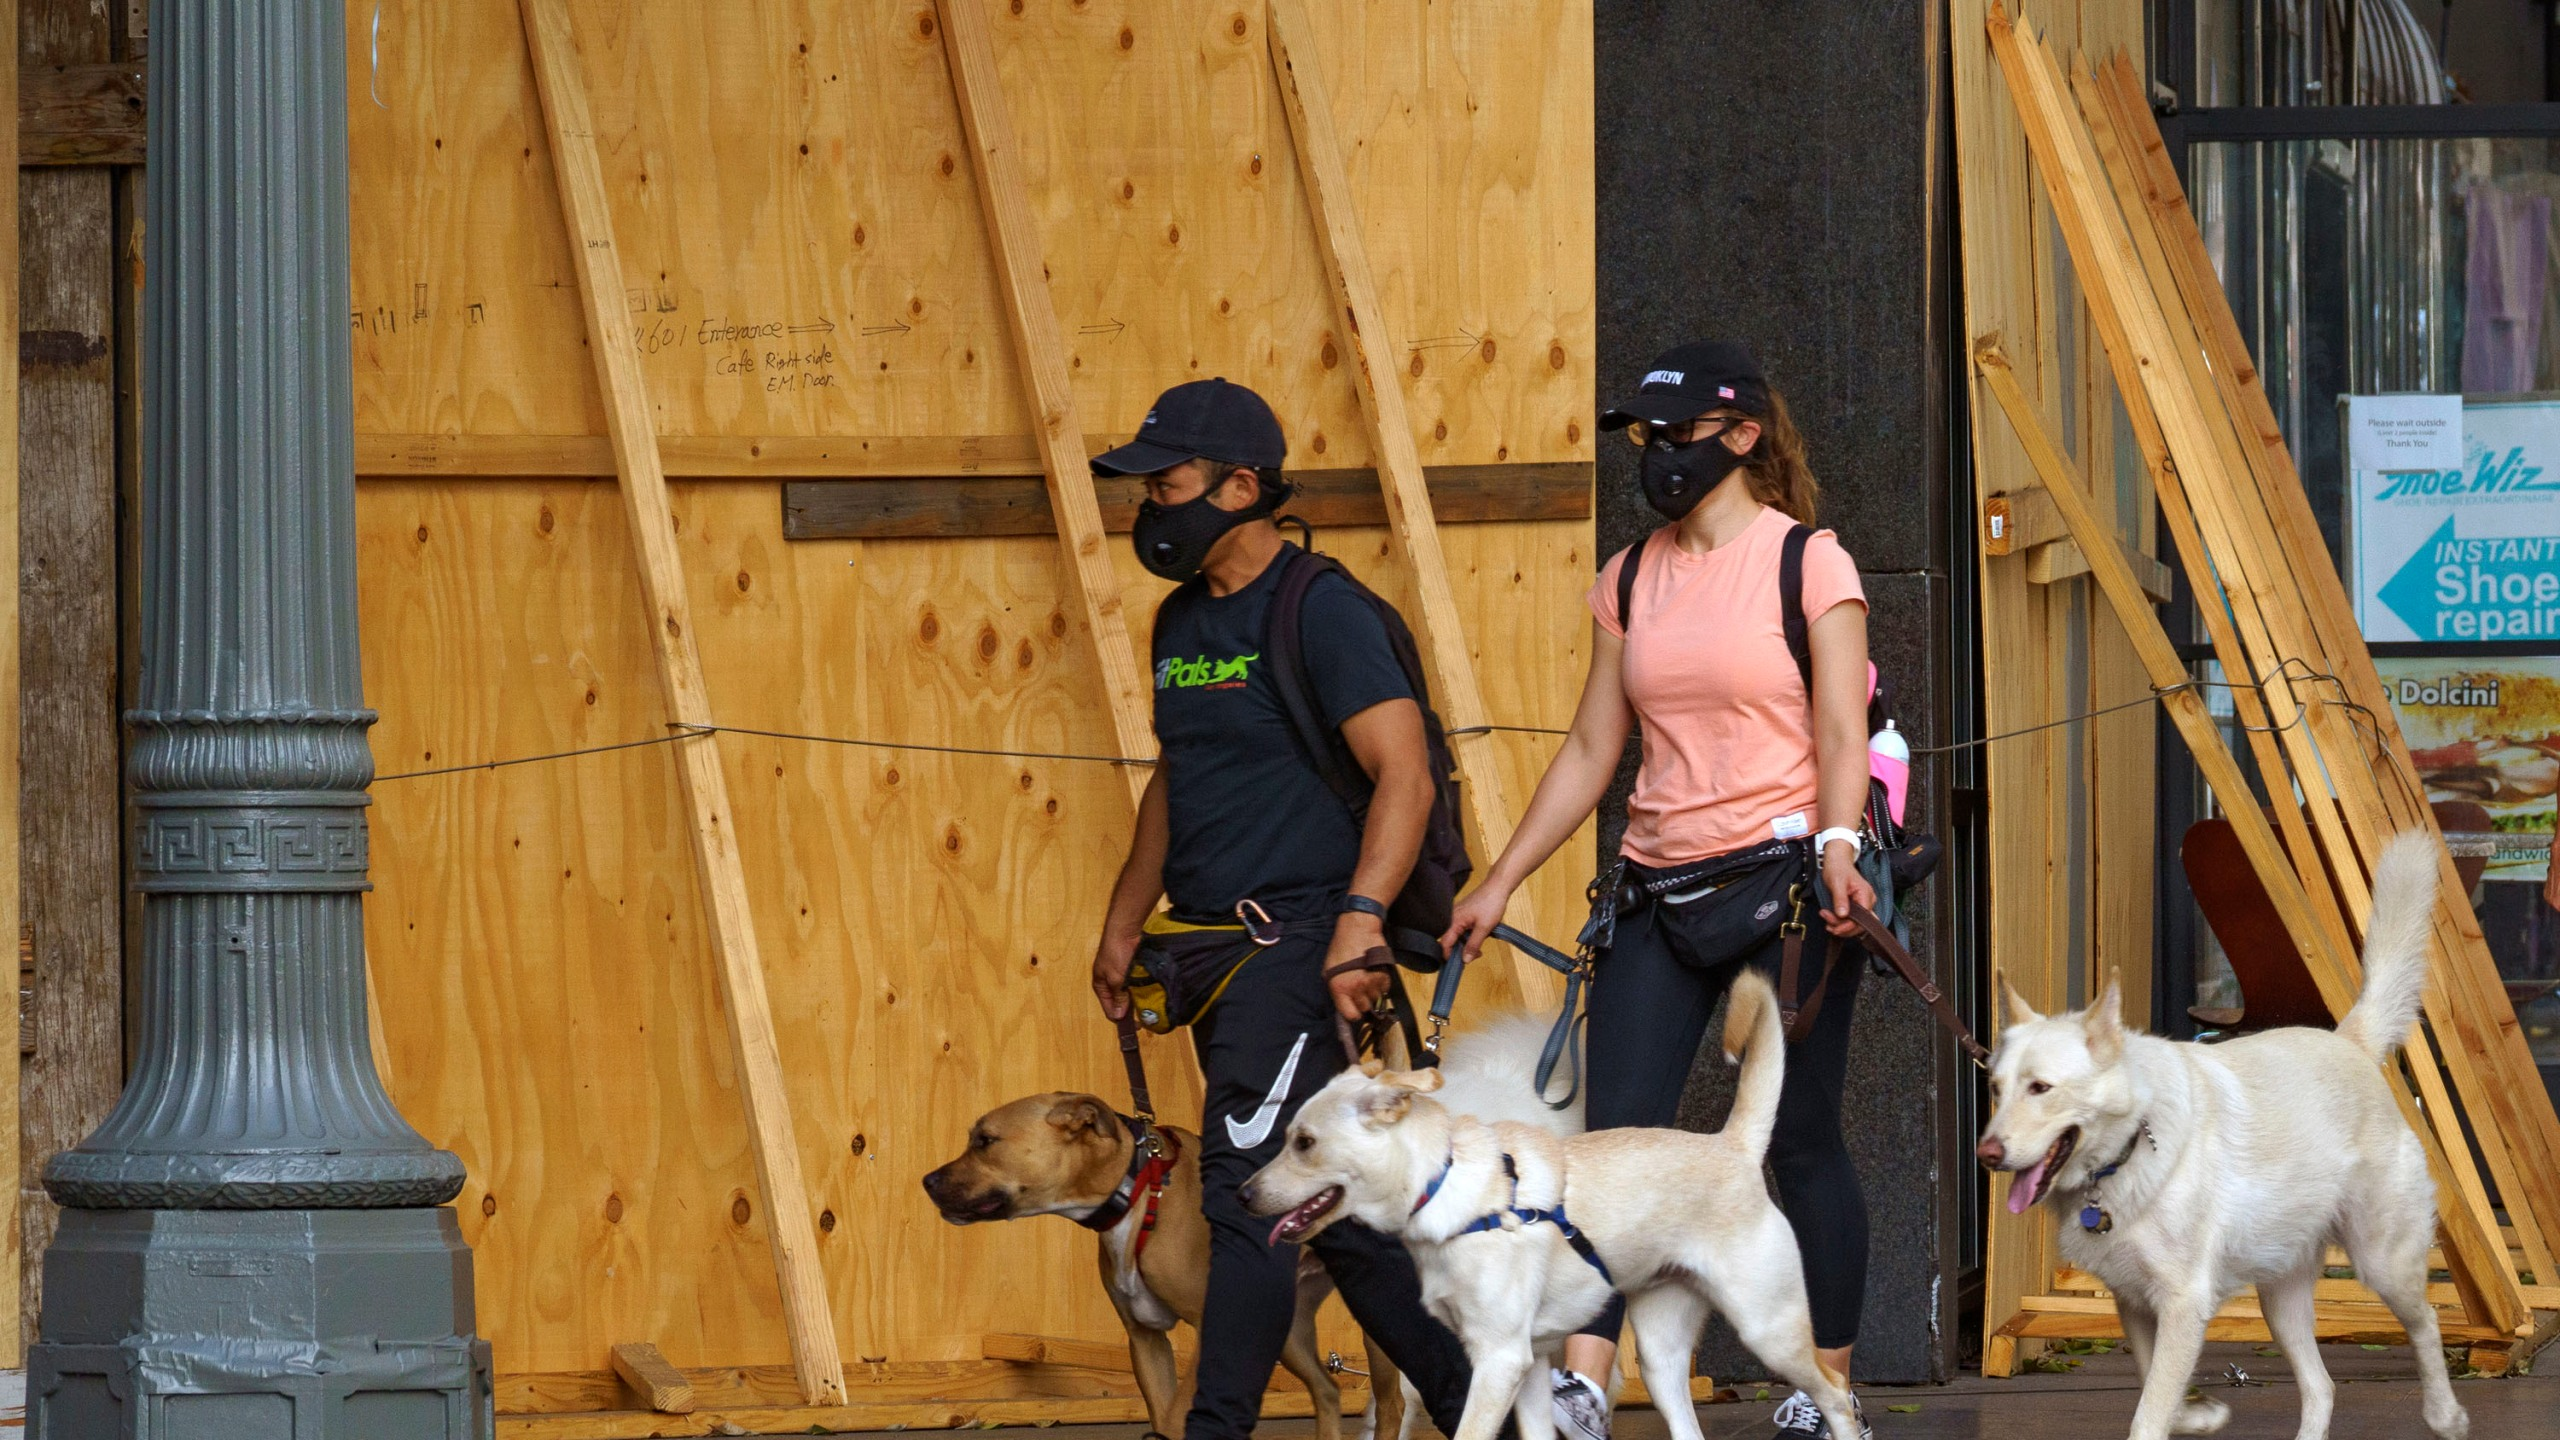 Dog walkers wear face masks as they walk around boarded business downtown Los Angeles Wednesday, Nov. 18, 2020. (AP Photo/Damian Dovarganes)